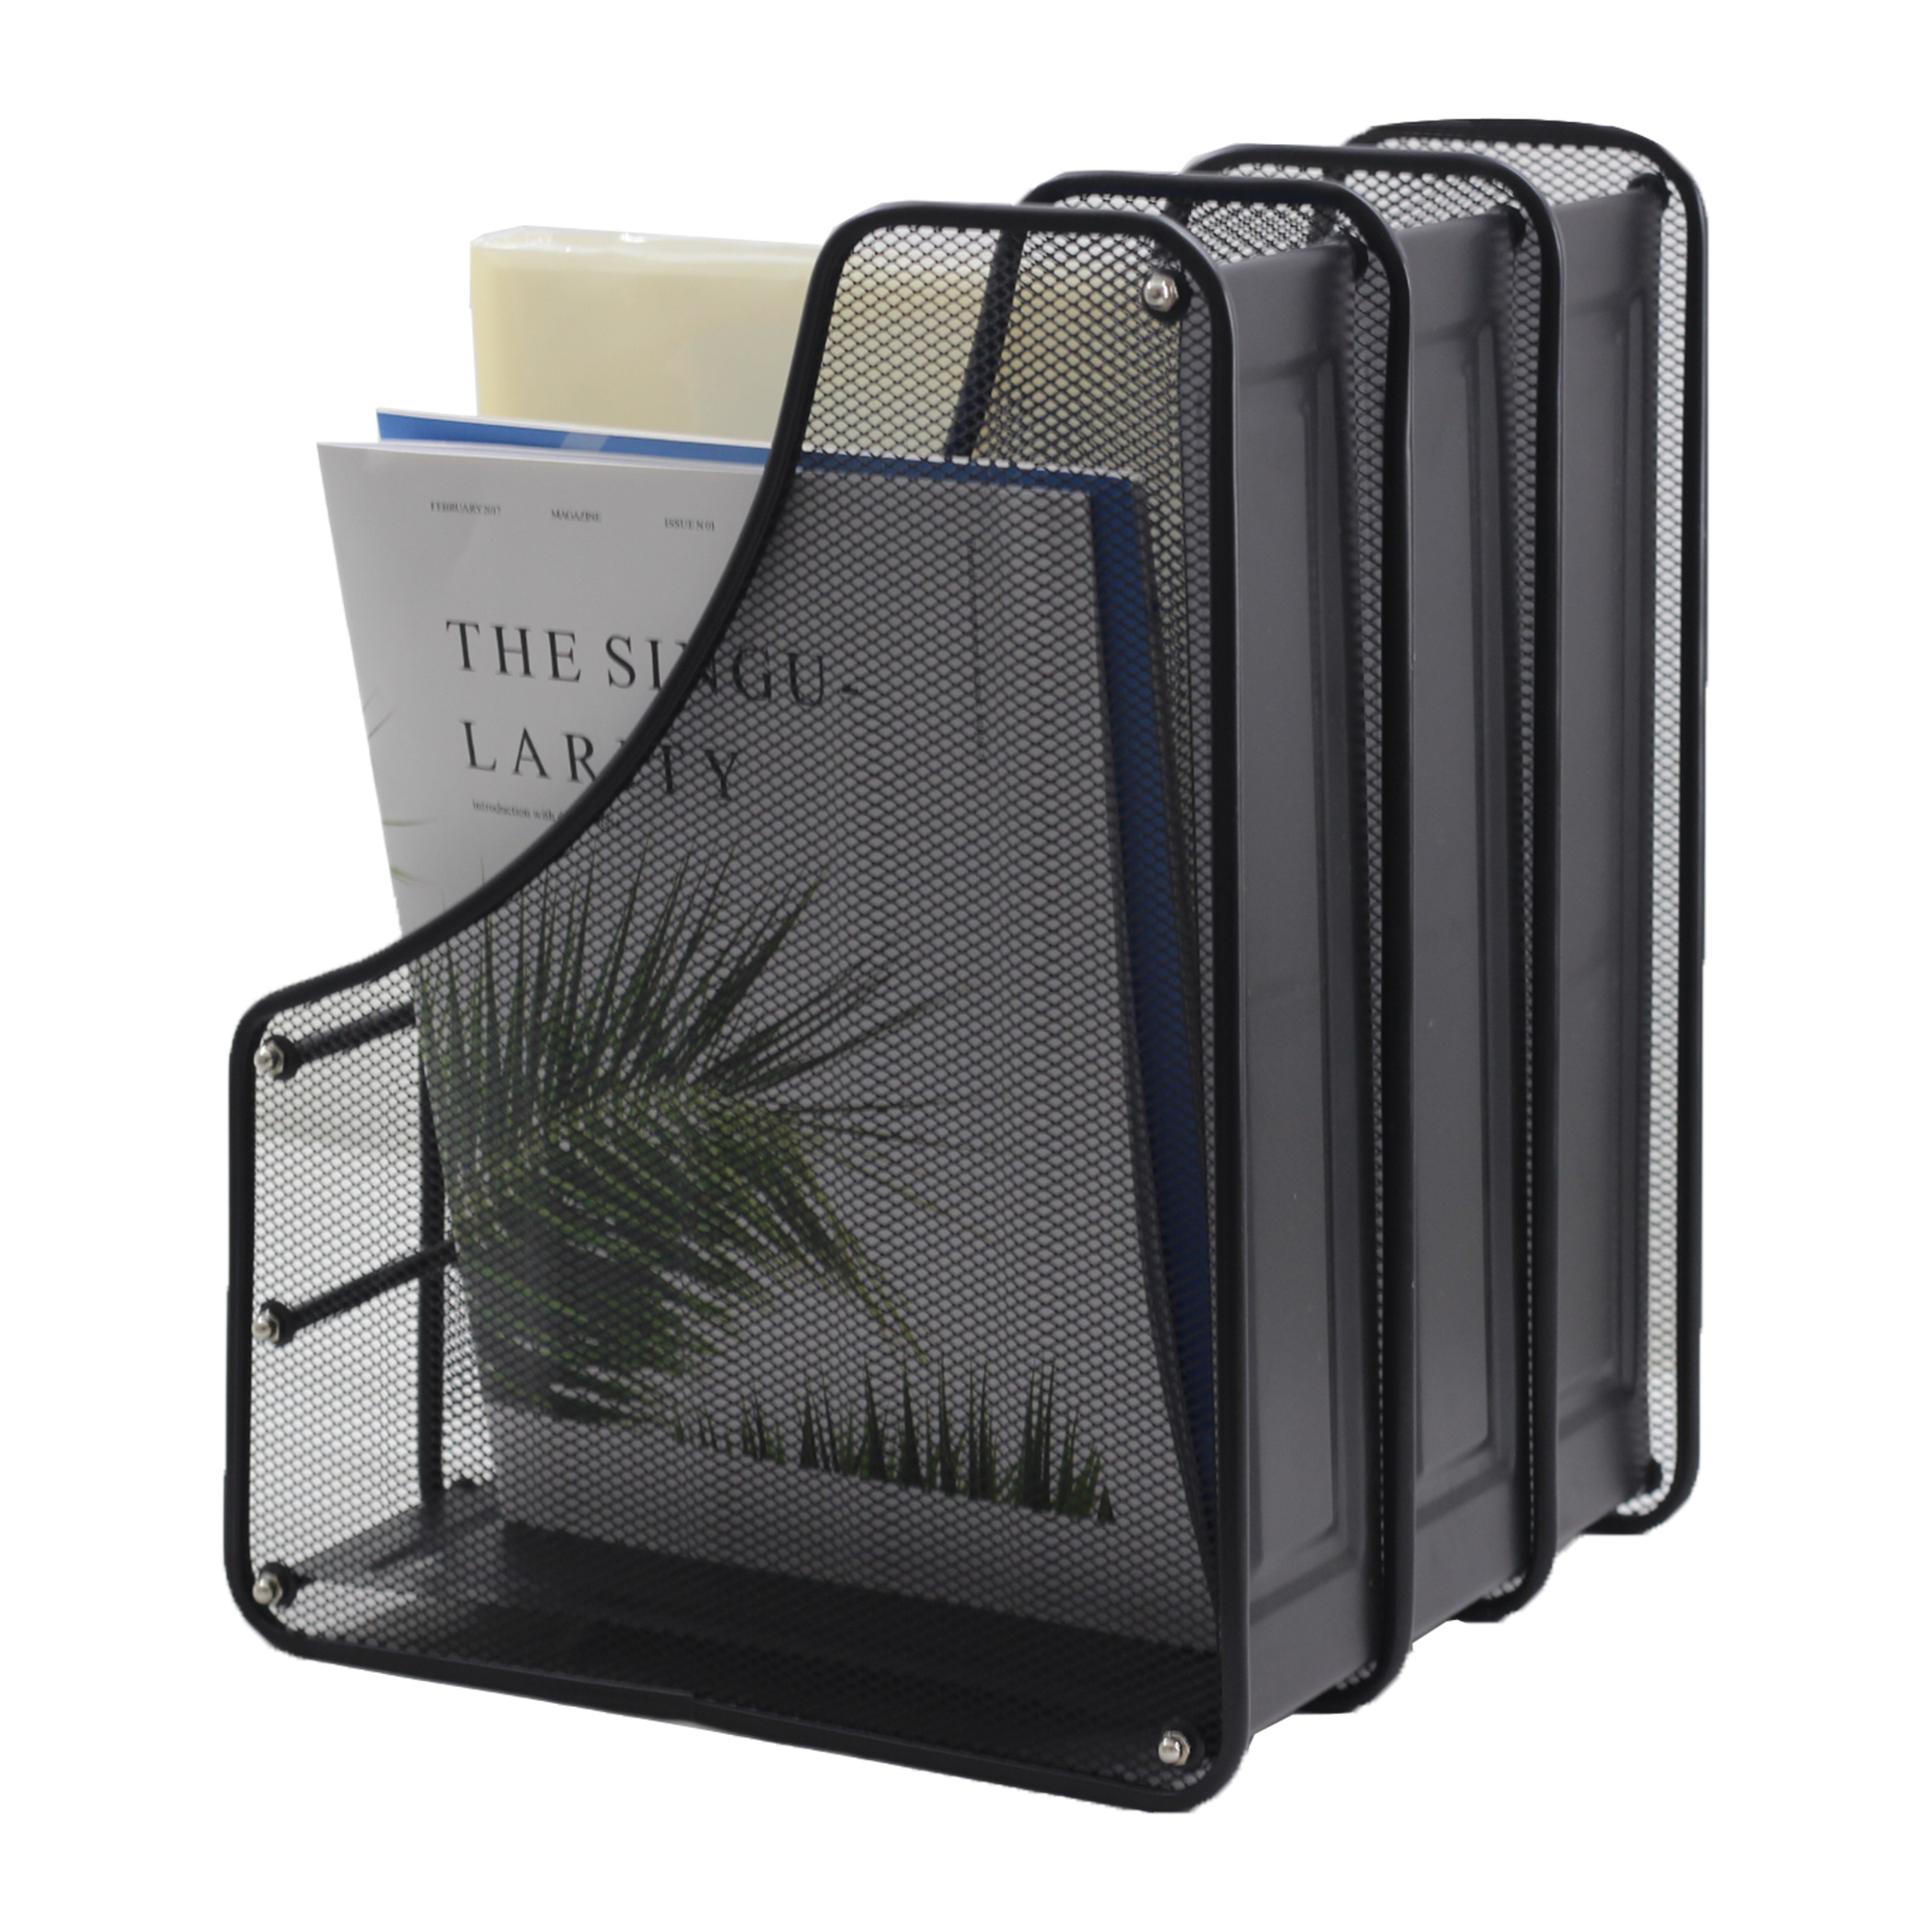 wideny wholesale office school desktop 3 compantents file racks magazie holder a 4 paper iron mesh metal wire magazine rack